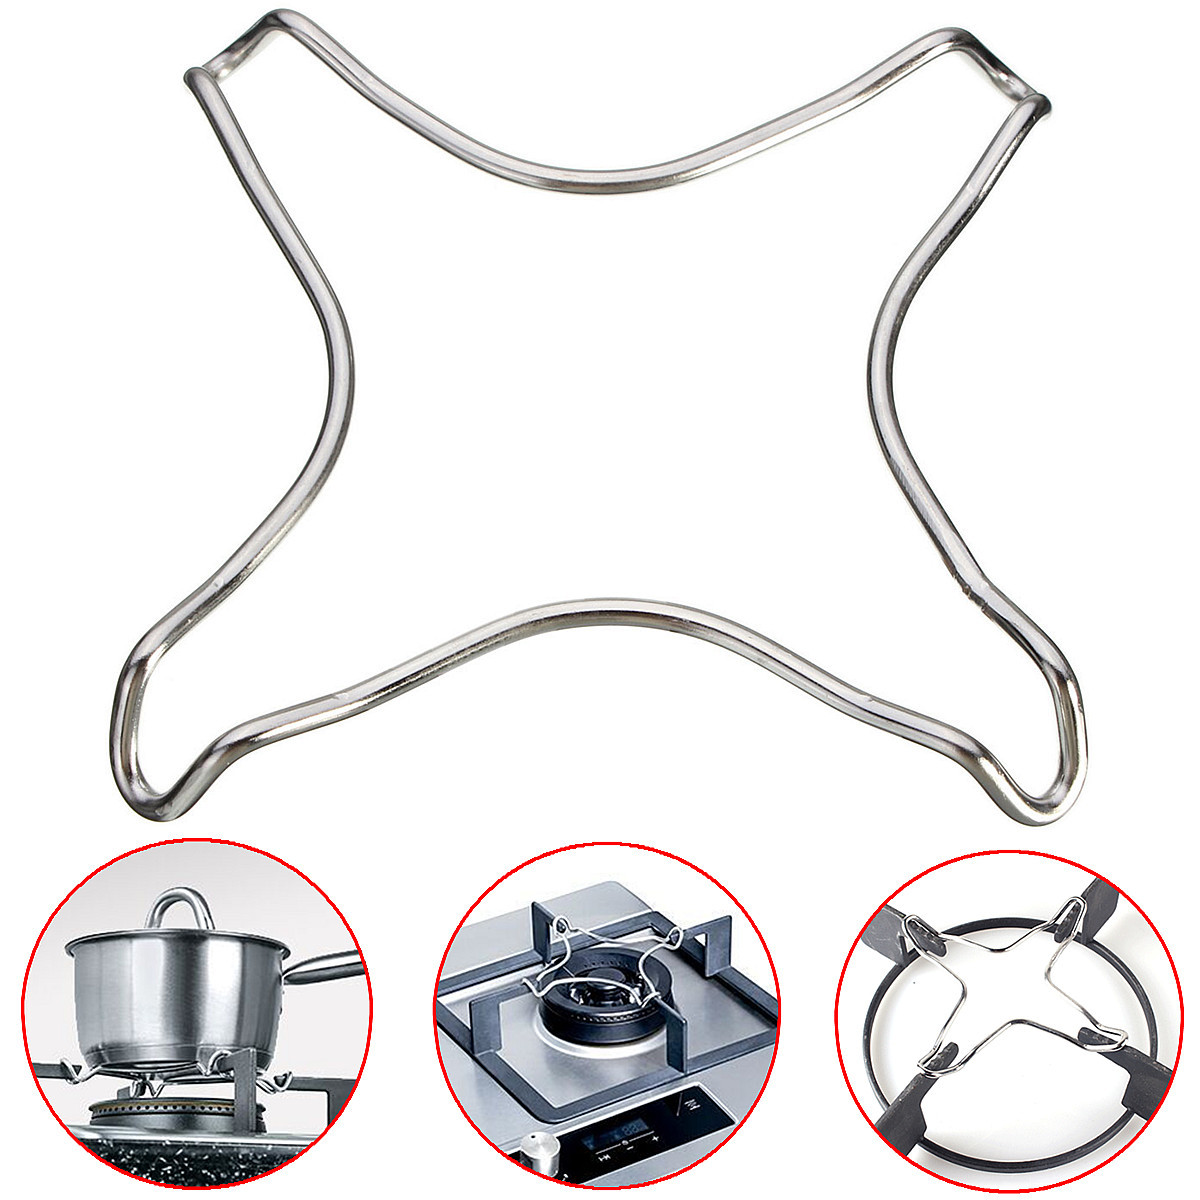 Hob Coffee Maker How To Use : Chrome Plated Metal Stove Top Coffee Maker Moka Trivet Pot Stand Gas Cooker Hob eBay